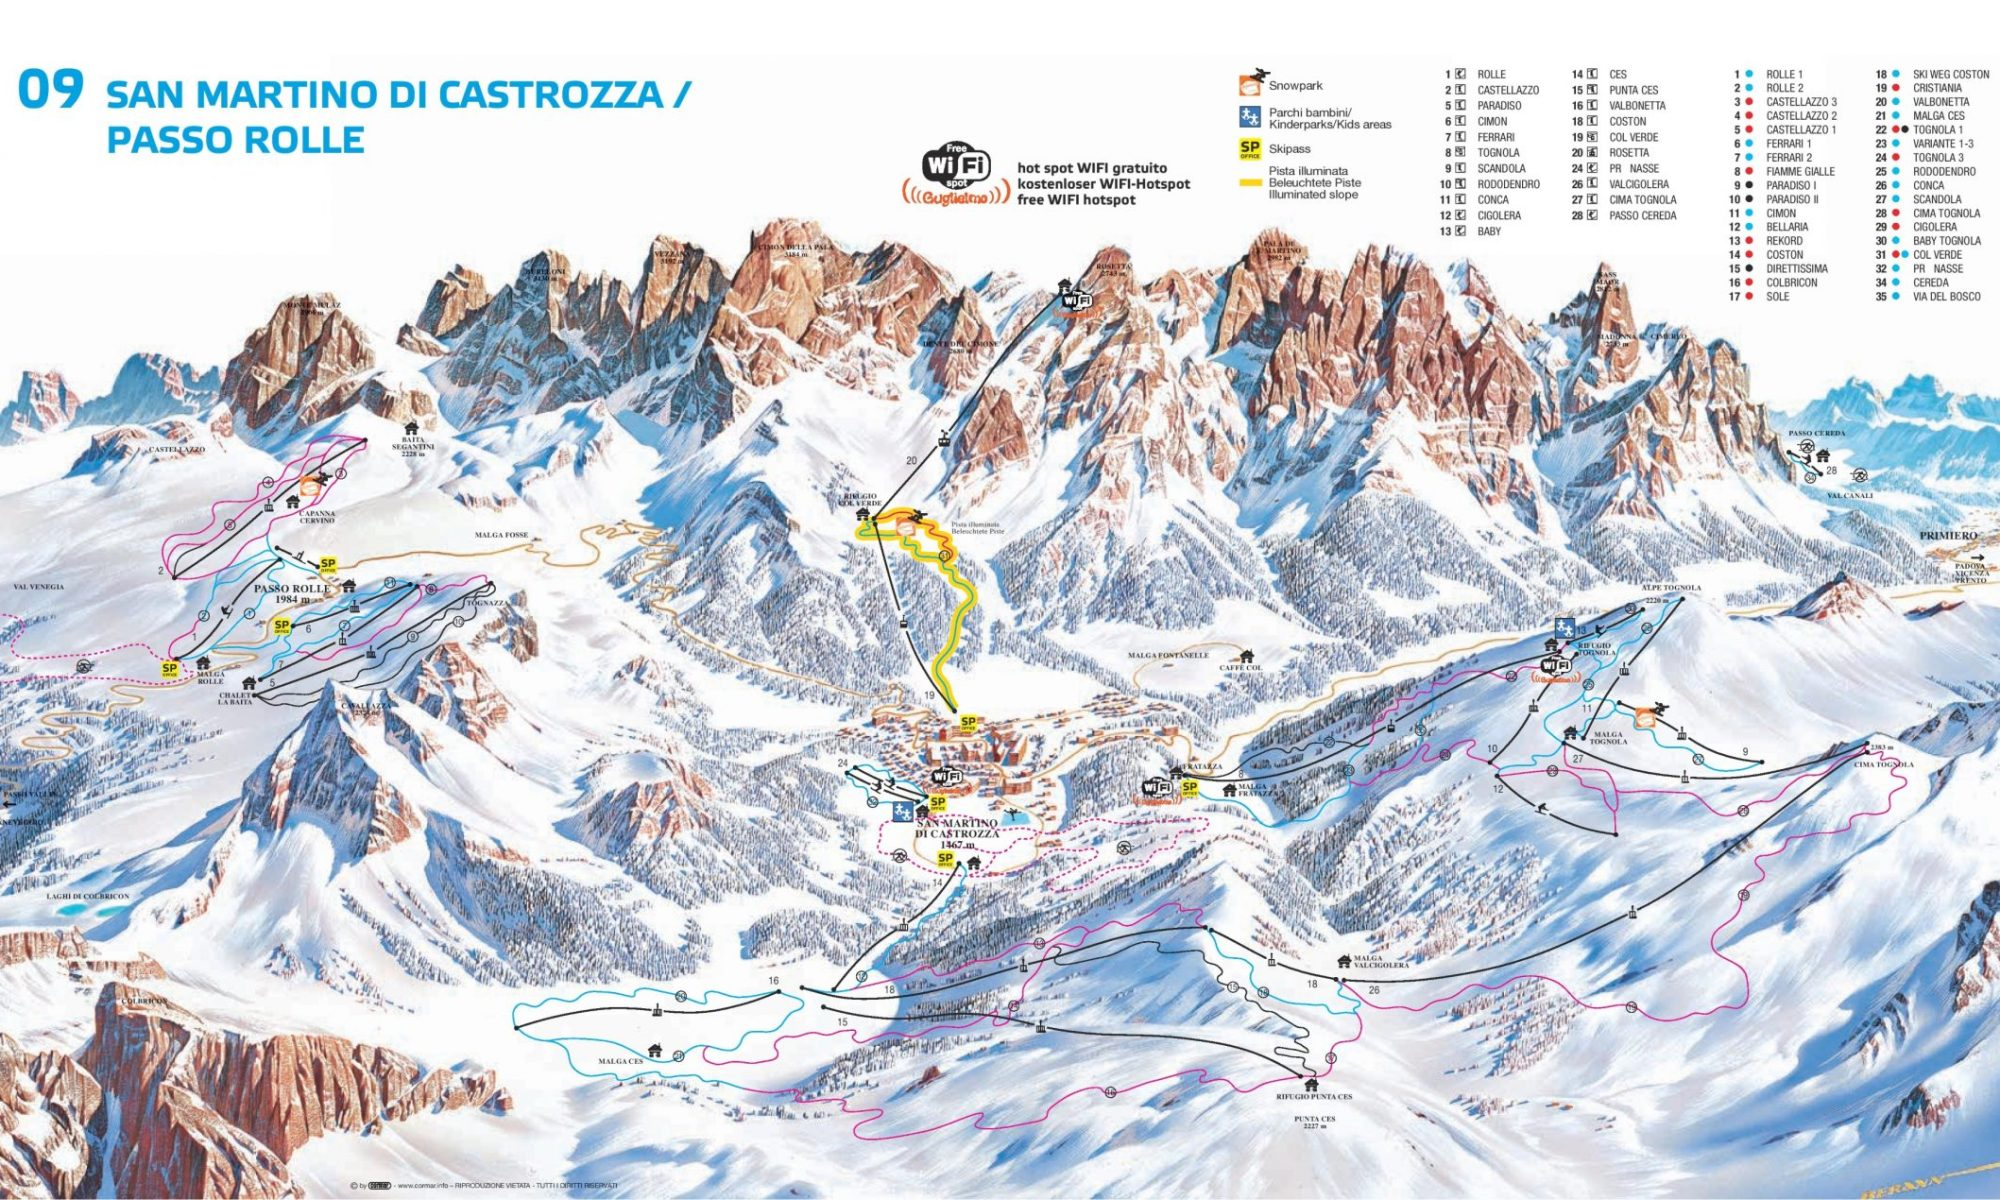 Ski map of Passo Rolle and San Martino di Castrozza. The Ferrari Chairlift has been reopened in record time at Passo Rolle, after being sabotaged.